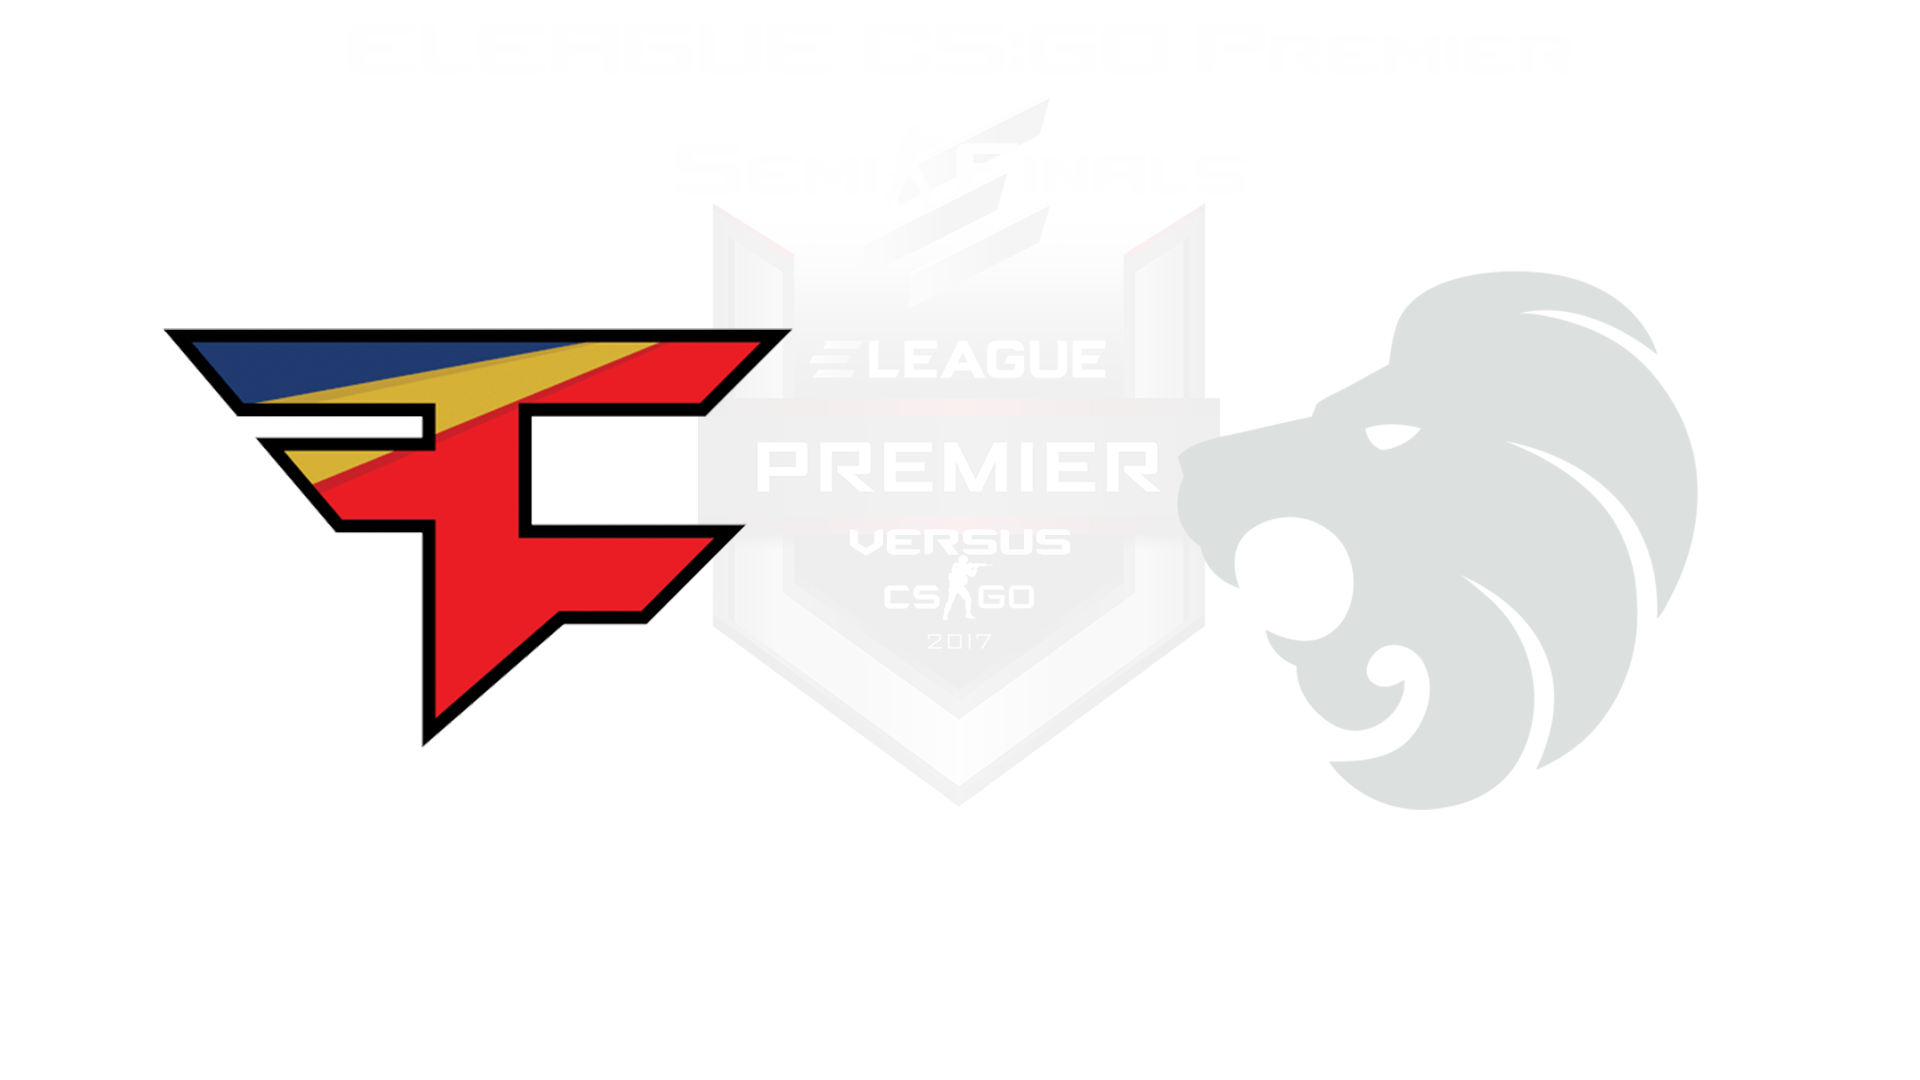 Faze csgo png. The semifinals matches for